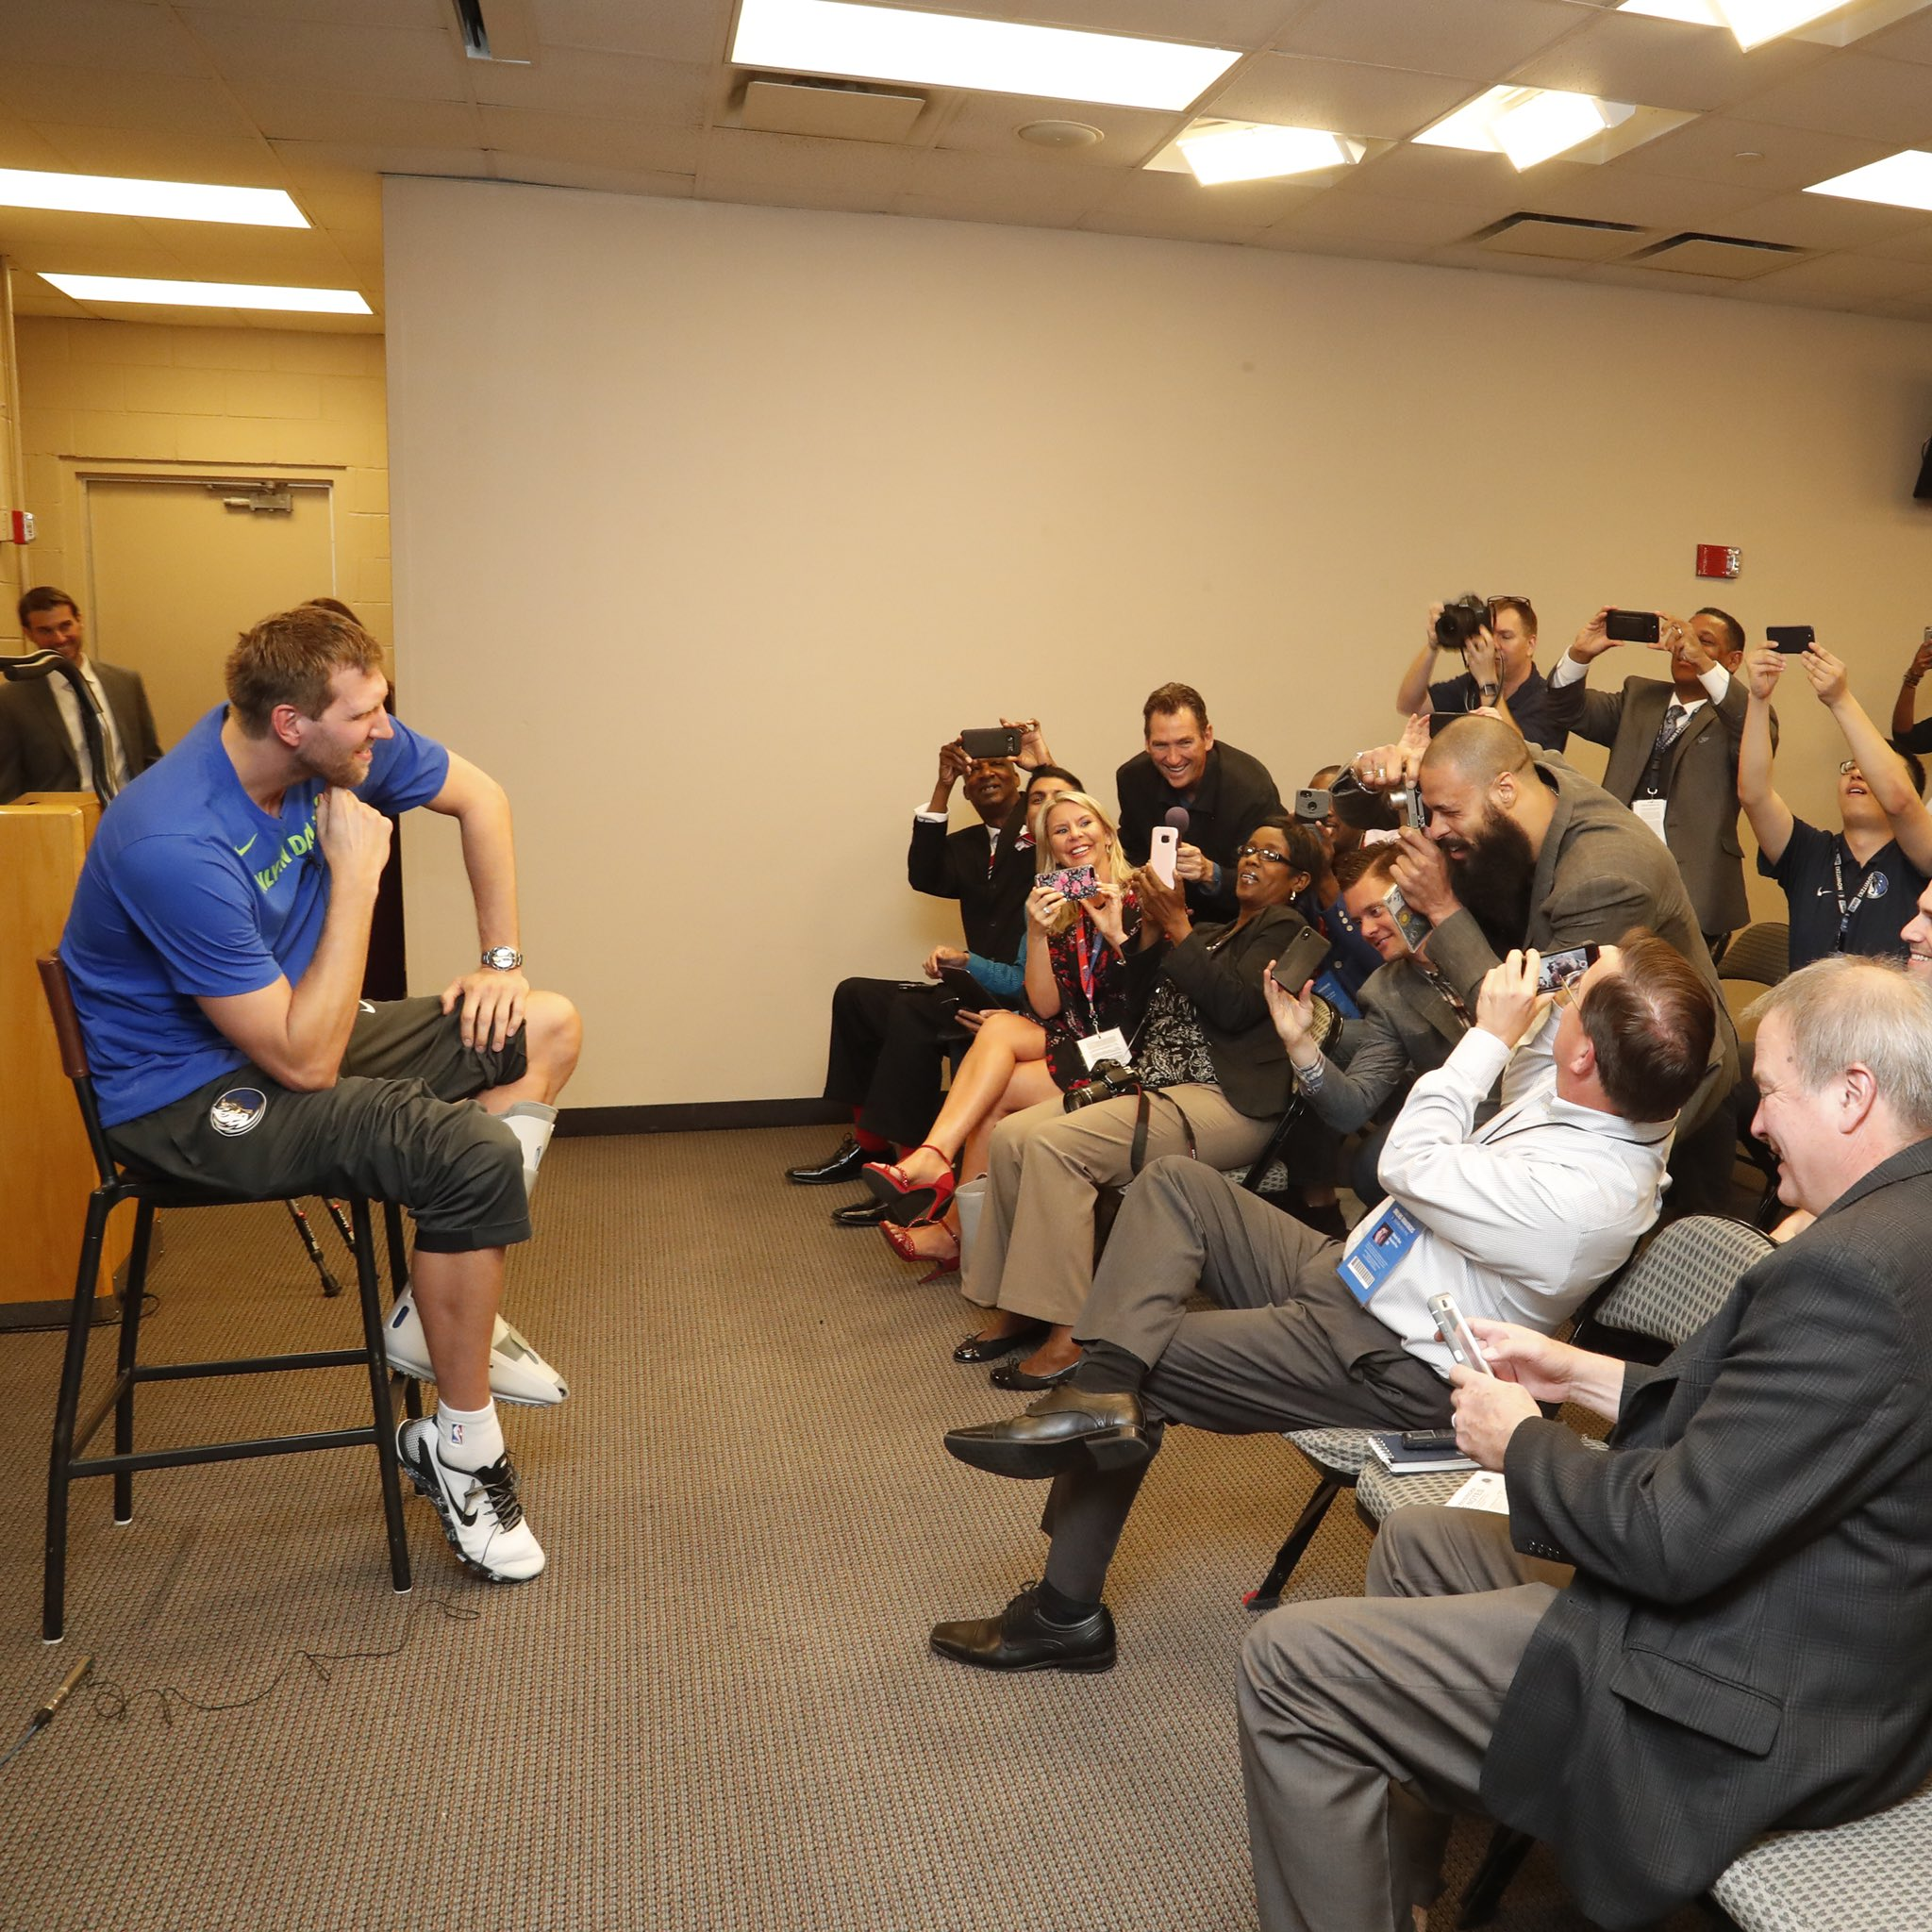 Special guest behind the lens at @swish41's exit interview! �� https://t.co/H7MfVY5xKR